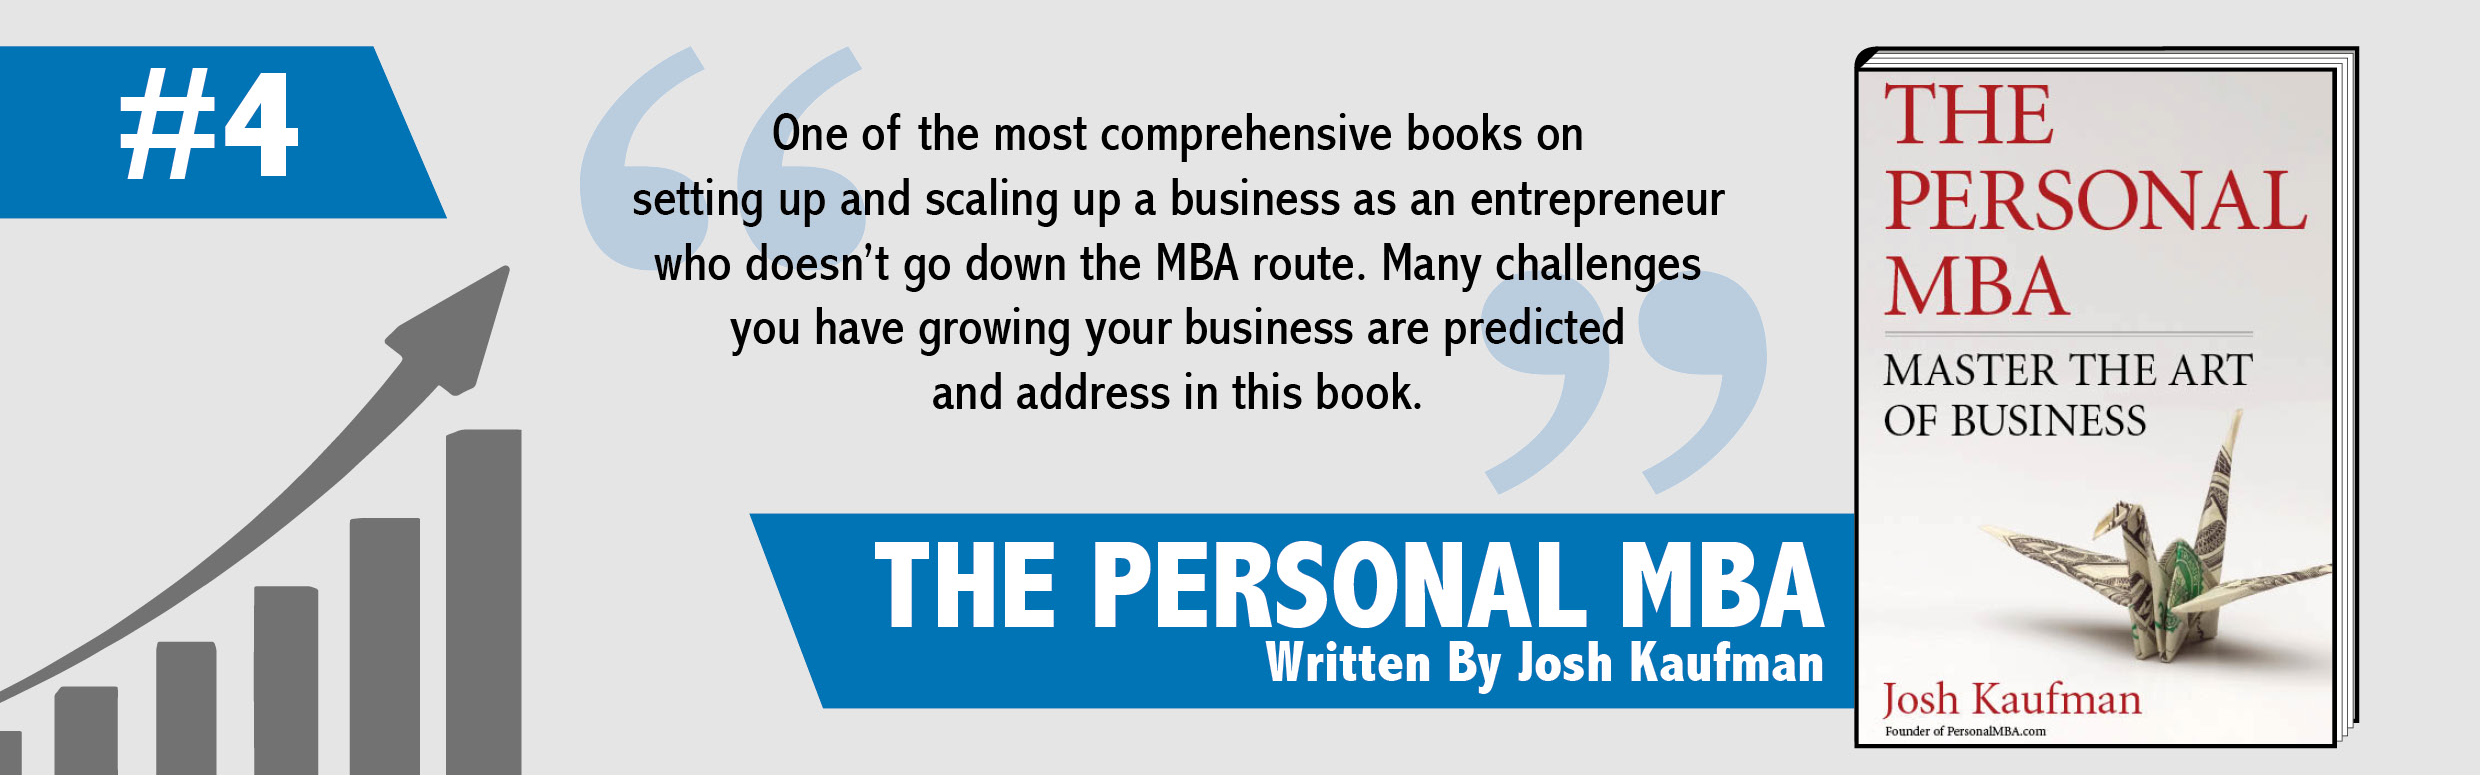 The Top 5 Books on Wealth Management